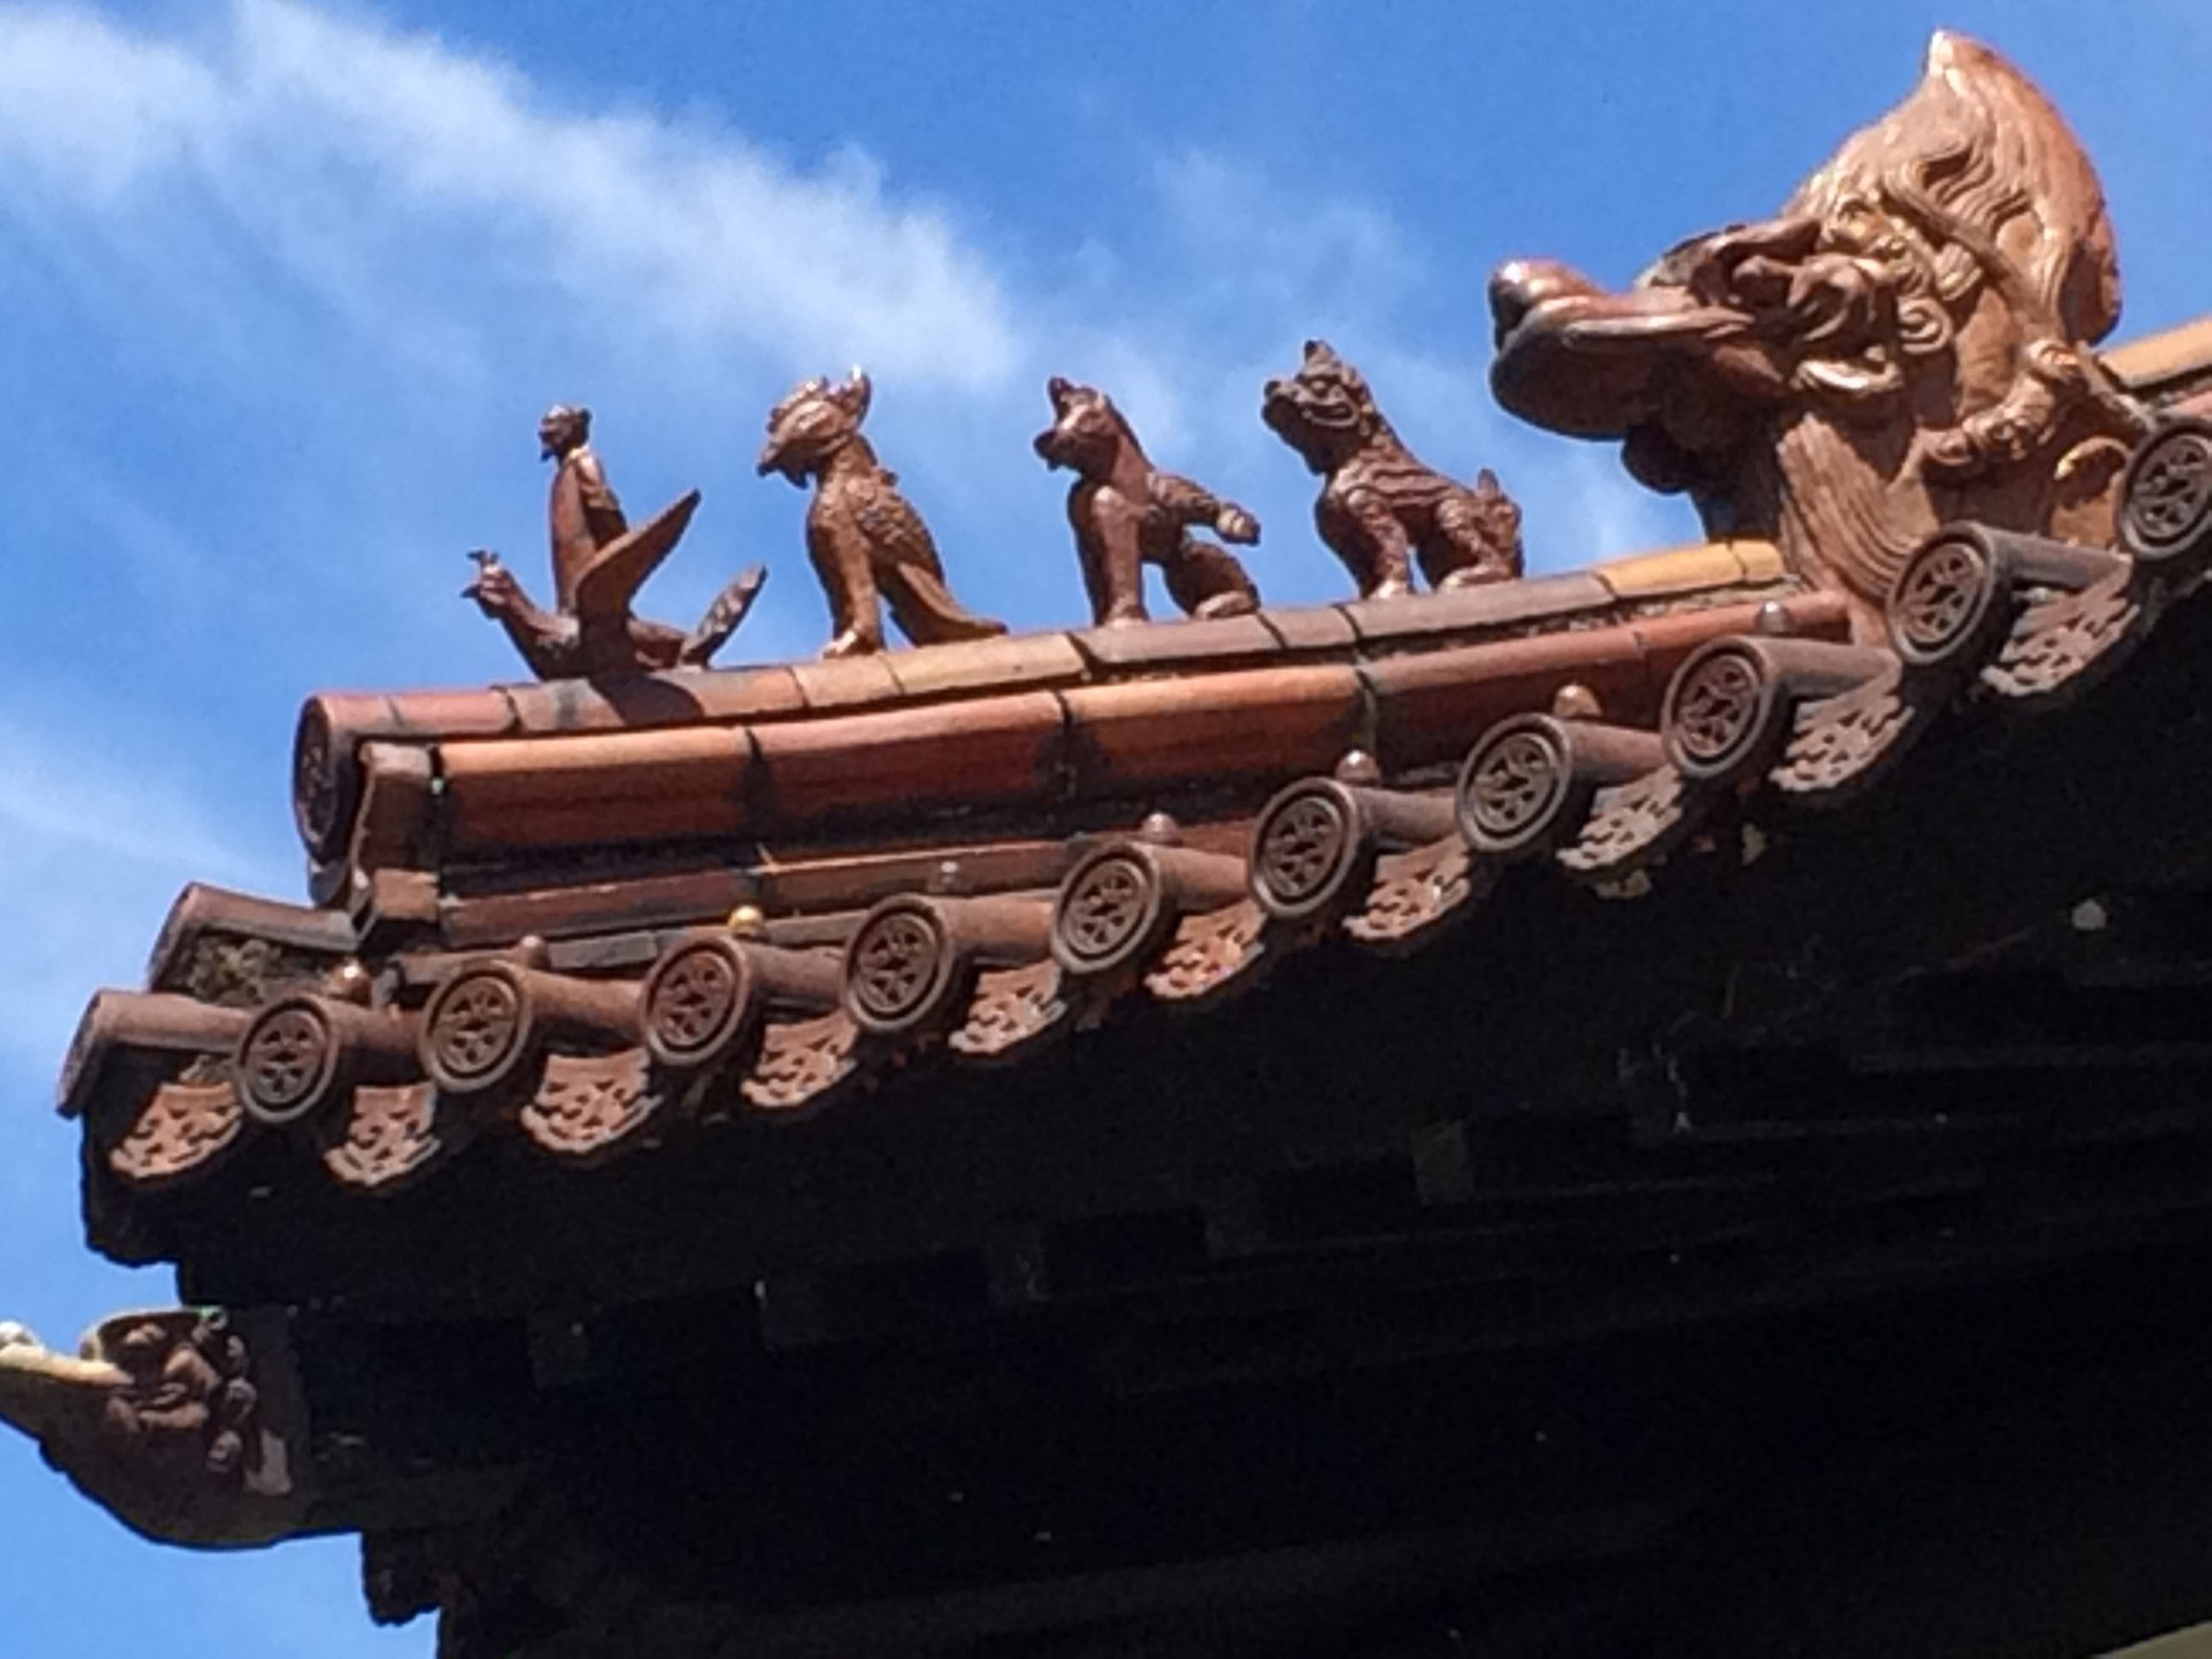 Monk standing on a bird, and other roof ornaments on a pavilion at the Memorial Peace Park